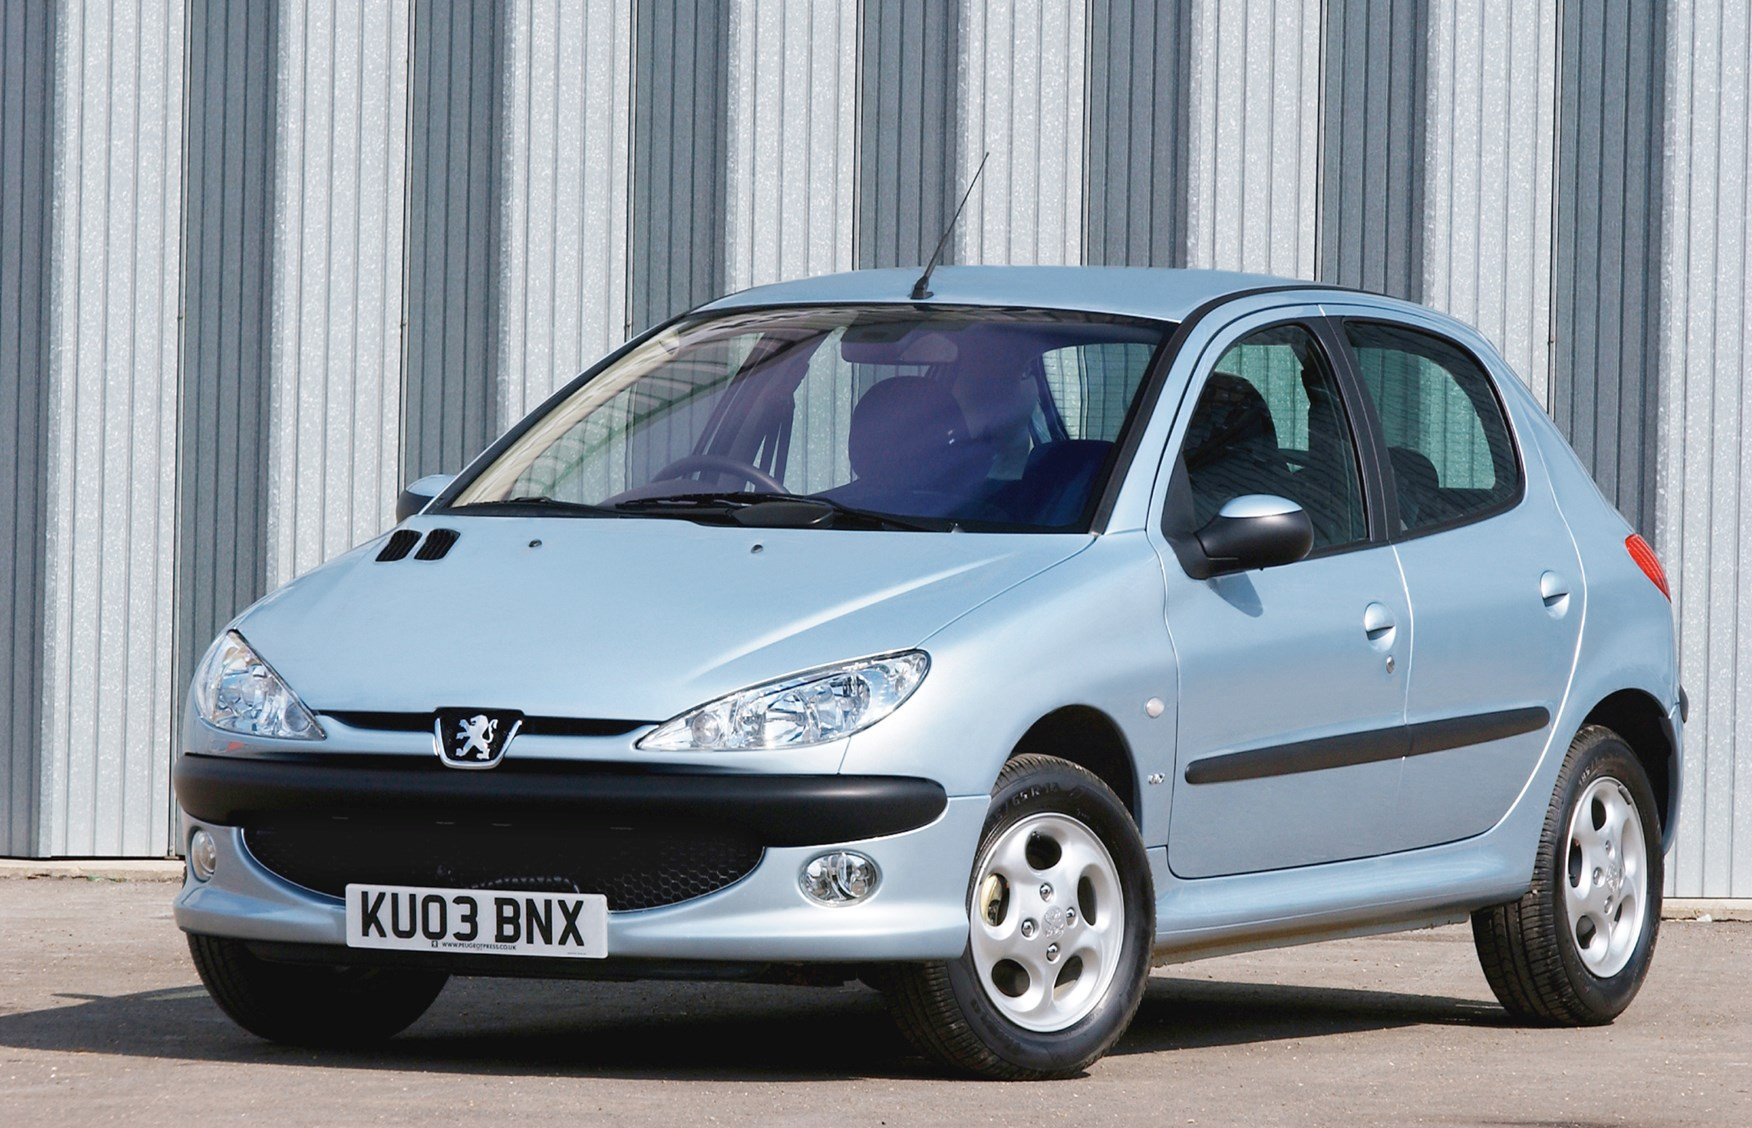 Peugeot 206 Hatchback Review (1998 - 2009)